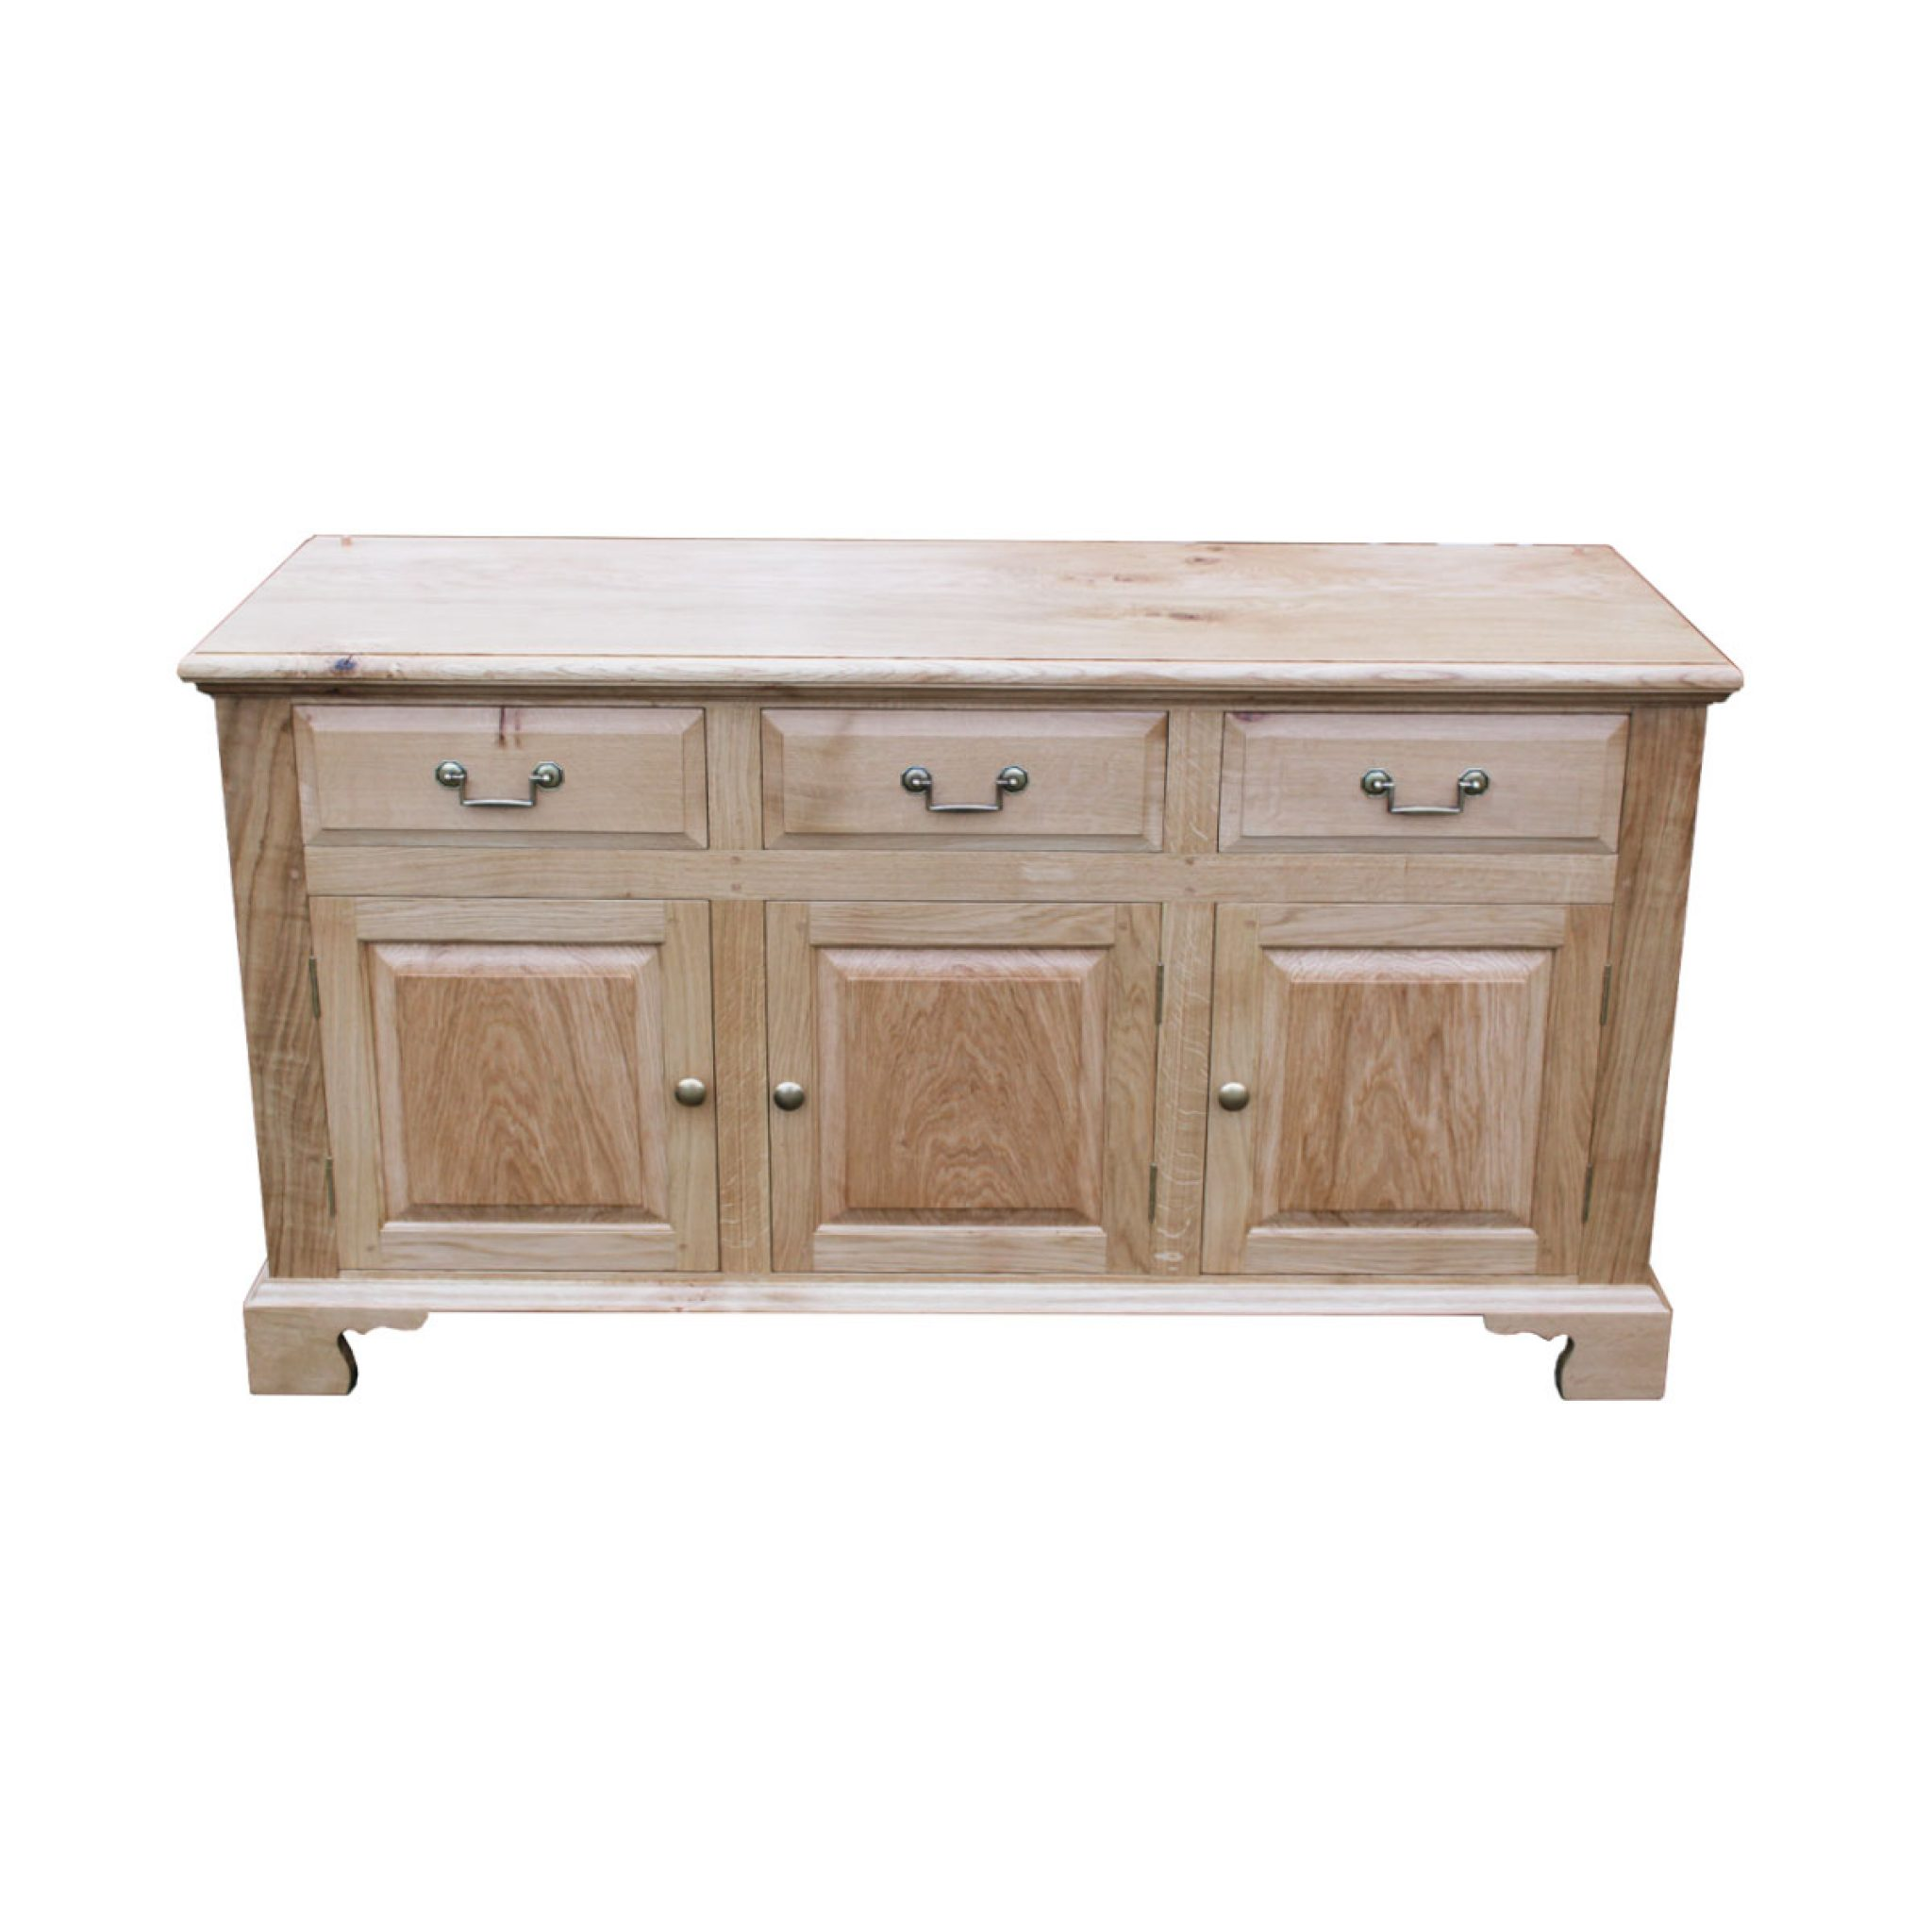 Handmade Oak Furniture Clogher